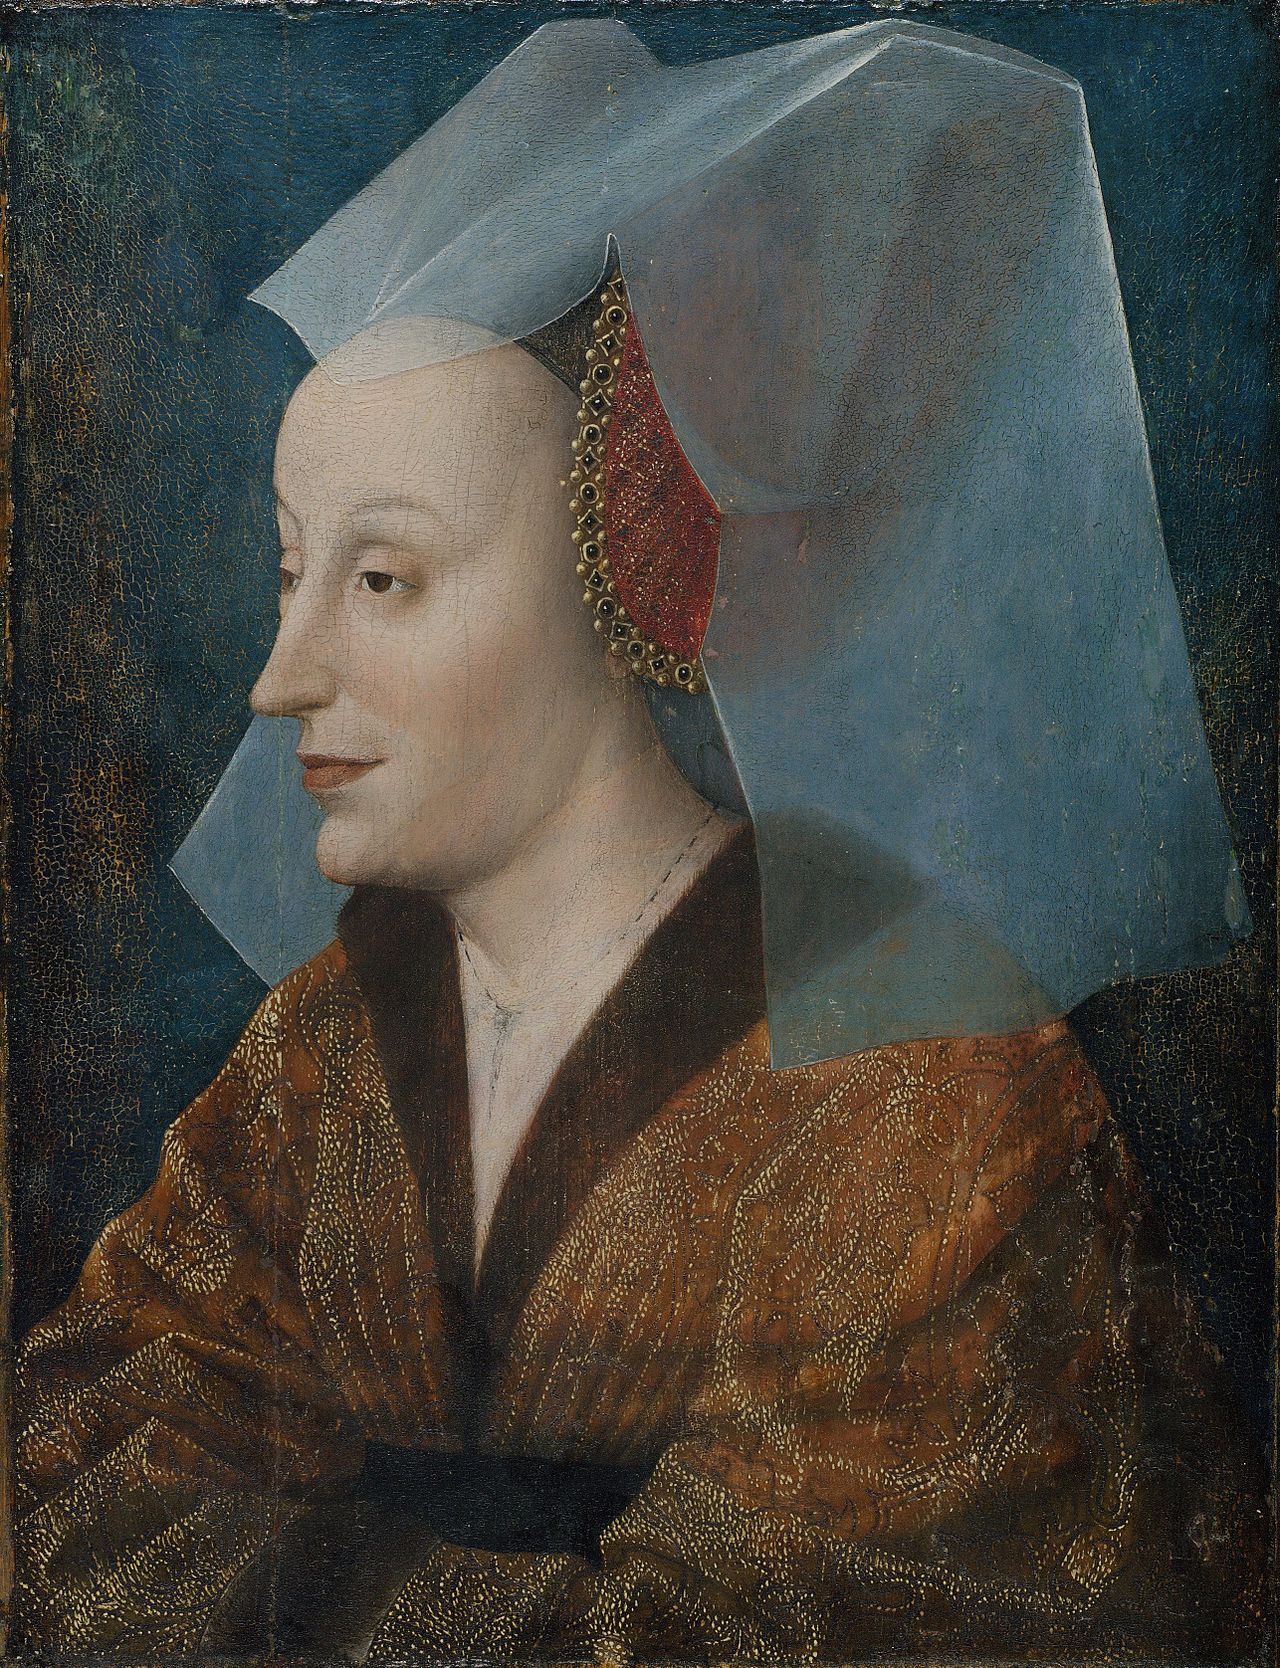 Probable portrait of Isabella of Portugal by an unknown northern artist in the mid-15th century. The woman's veil is transparent silk - most likely supplied by Giovanni di Nicolao Arnolfini